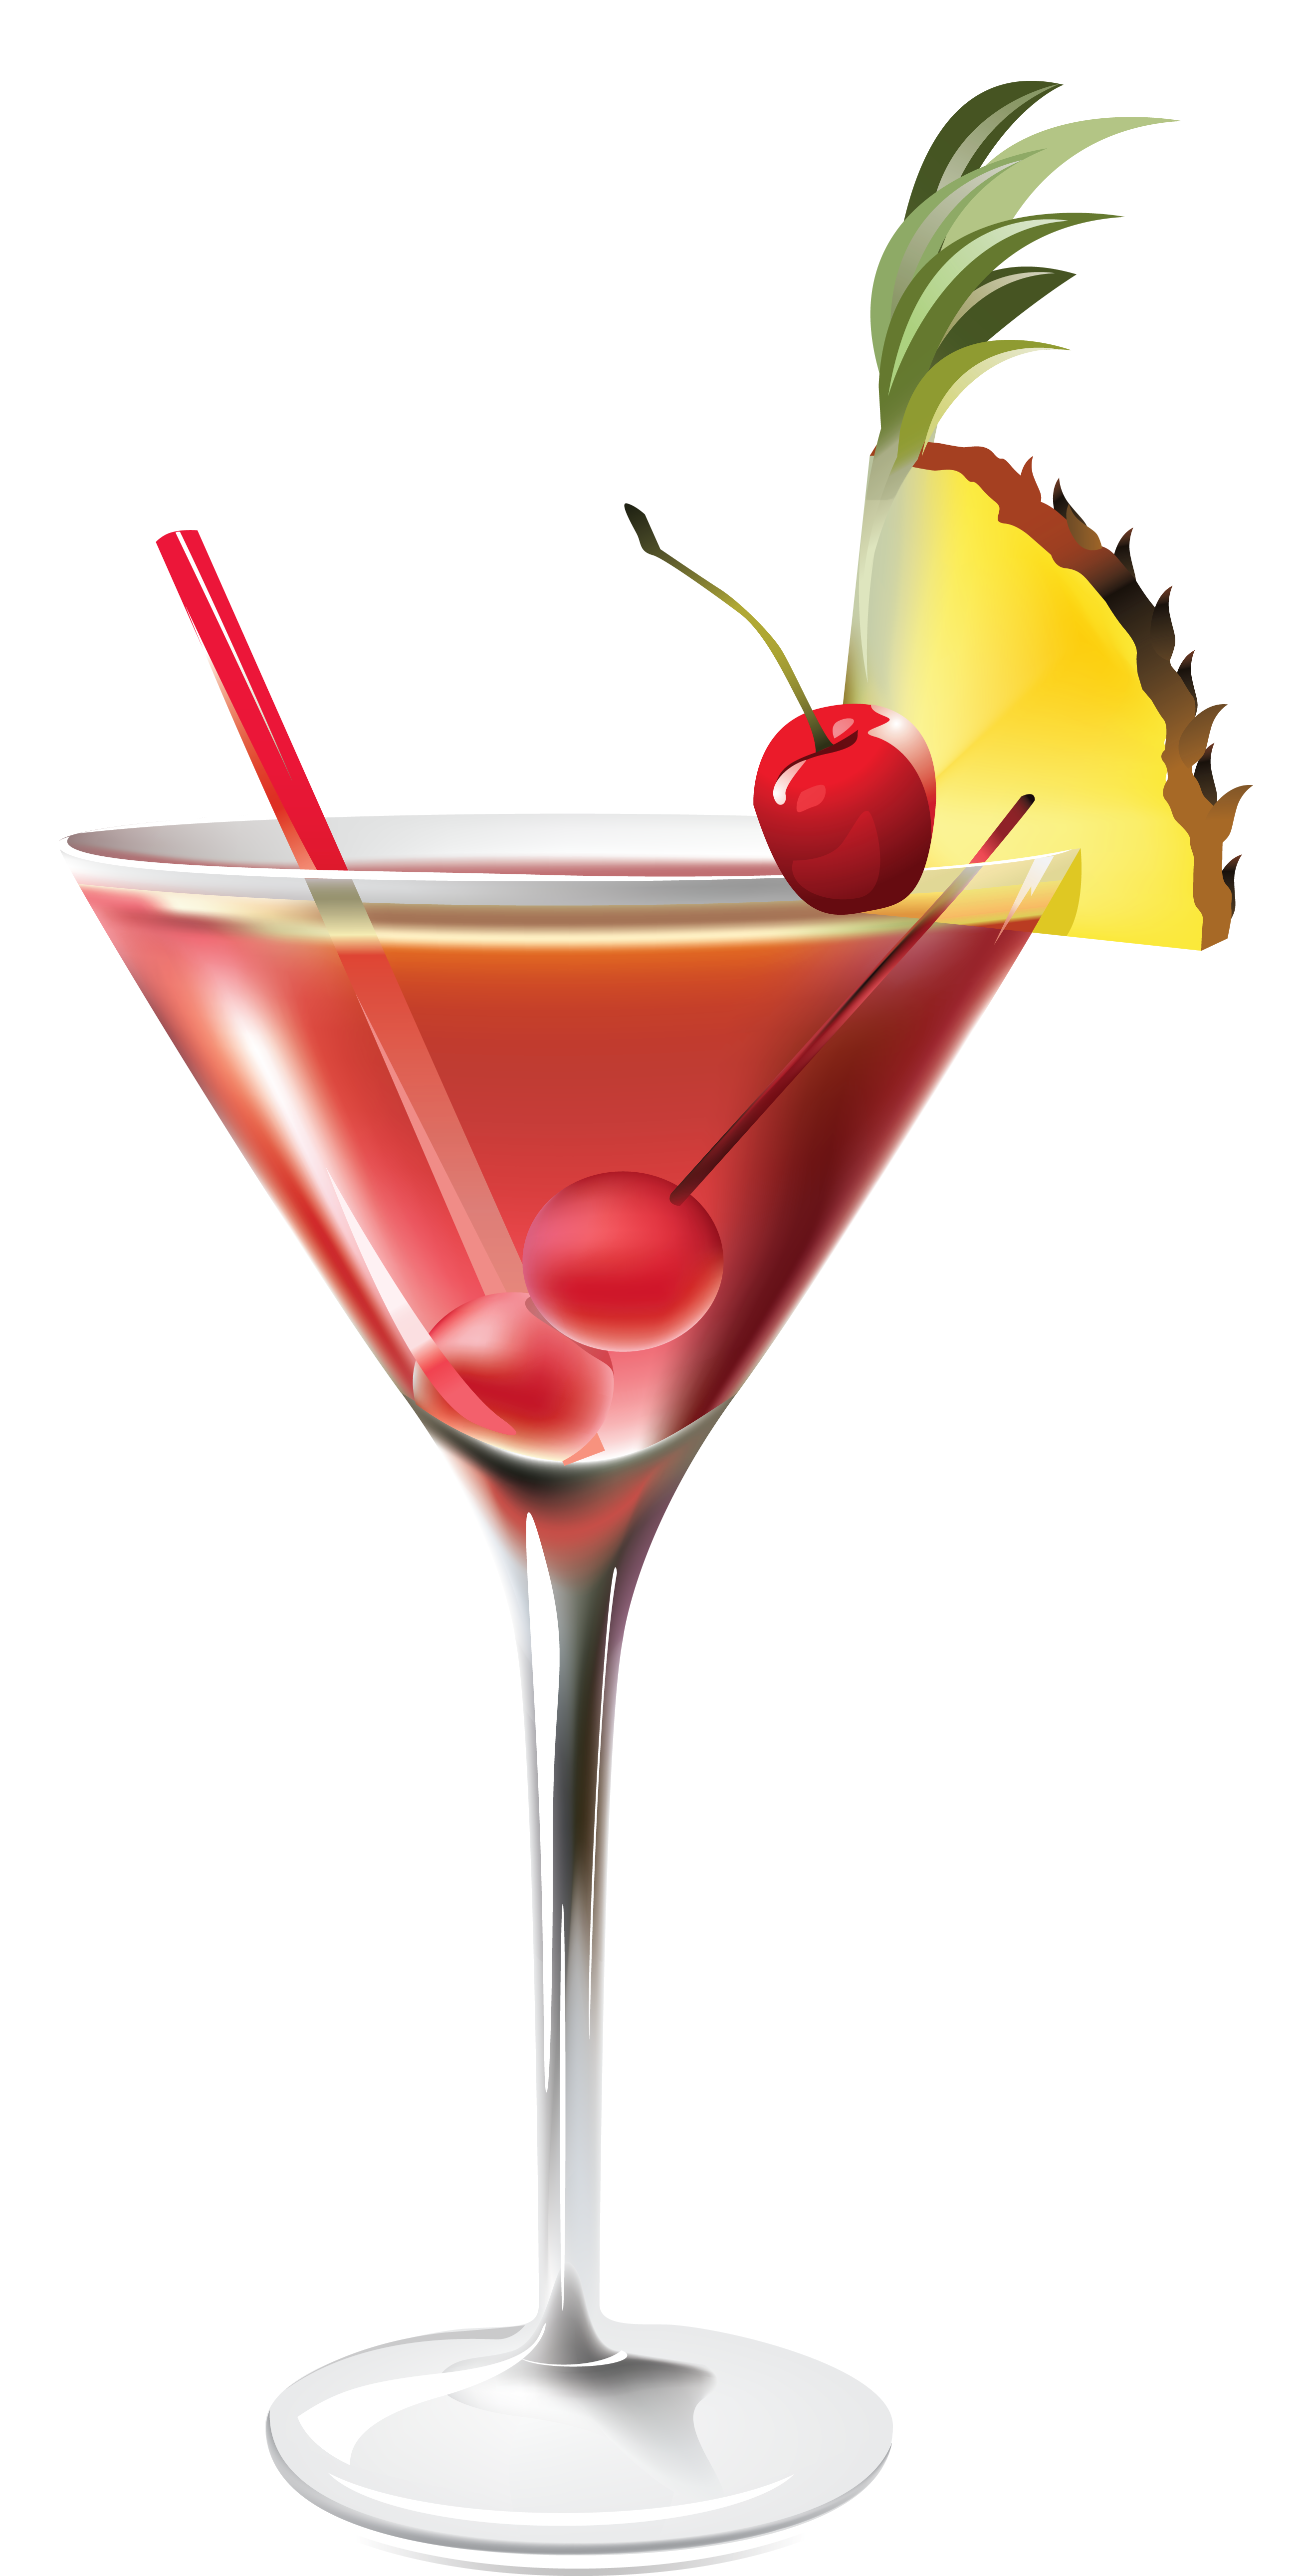 Pineapple clipart glass. Cocktail with png picture